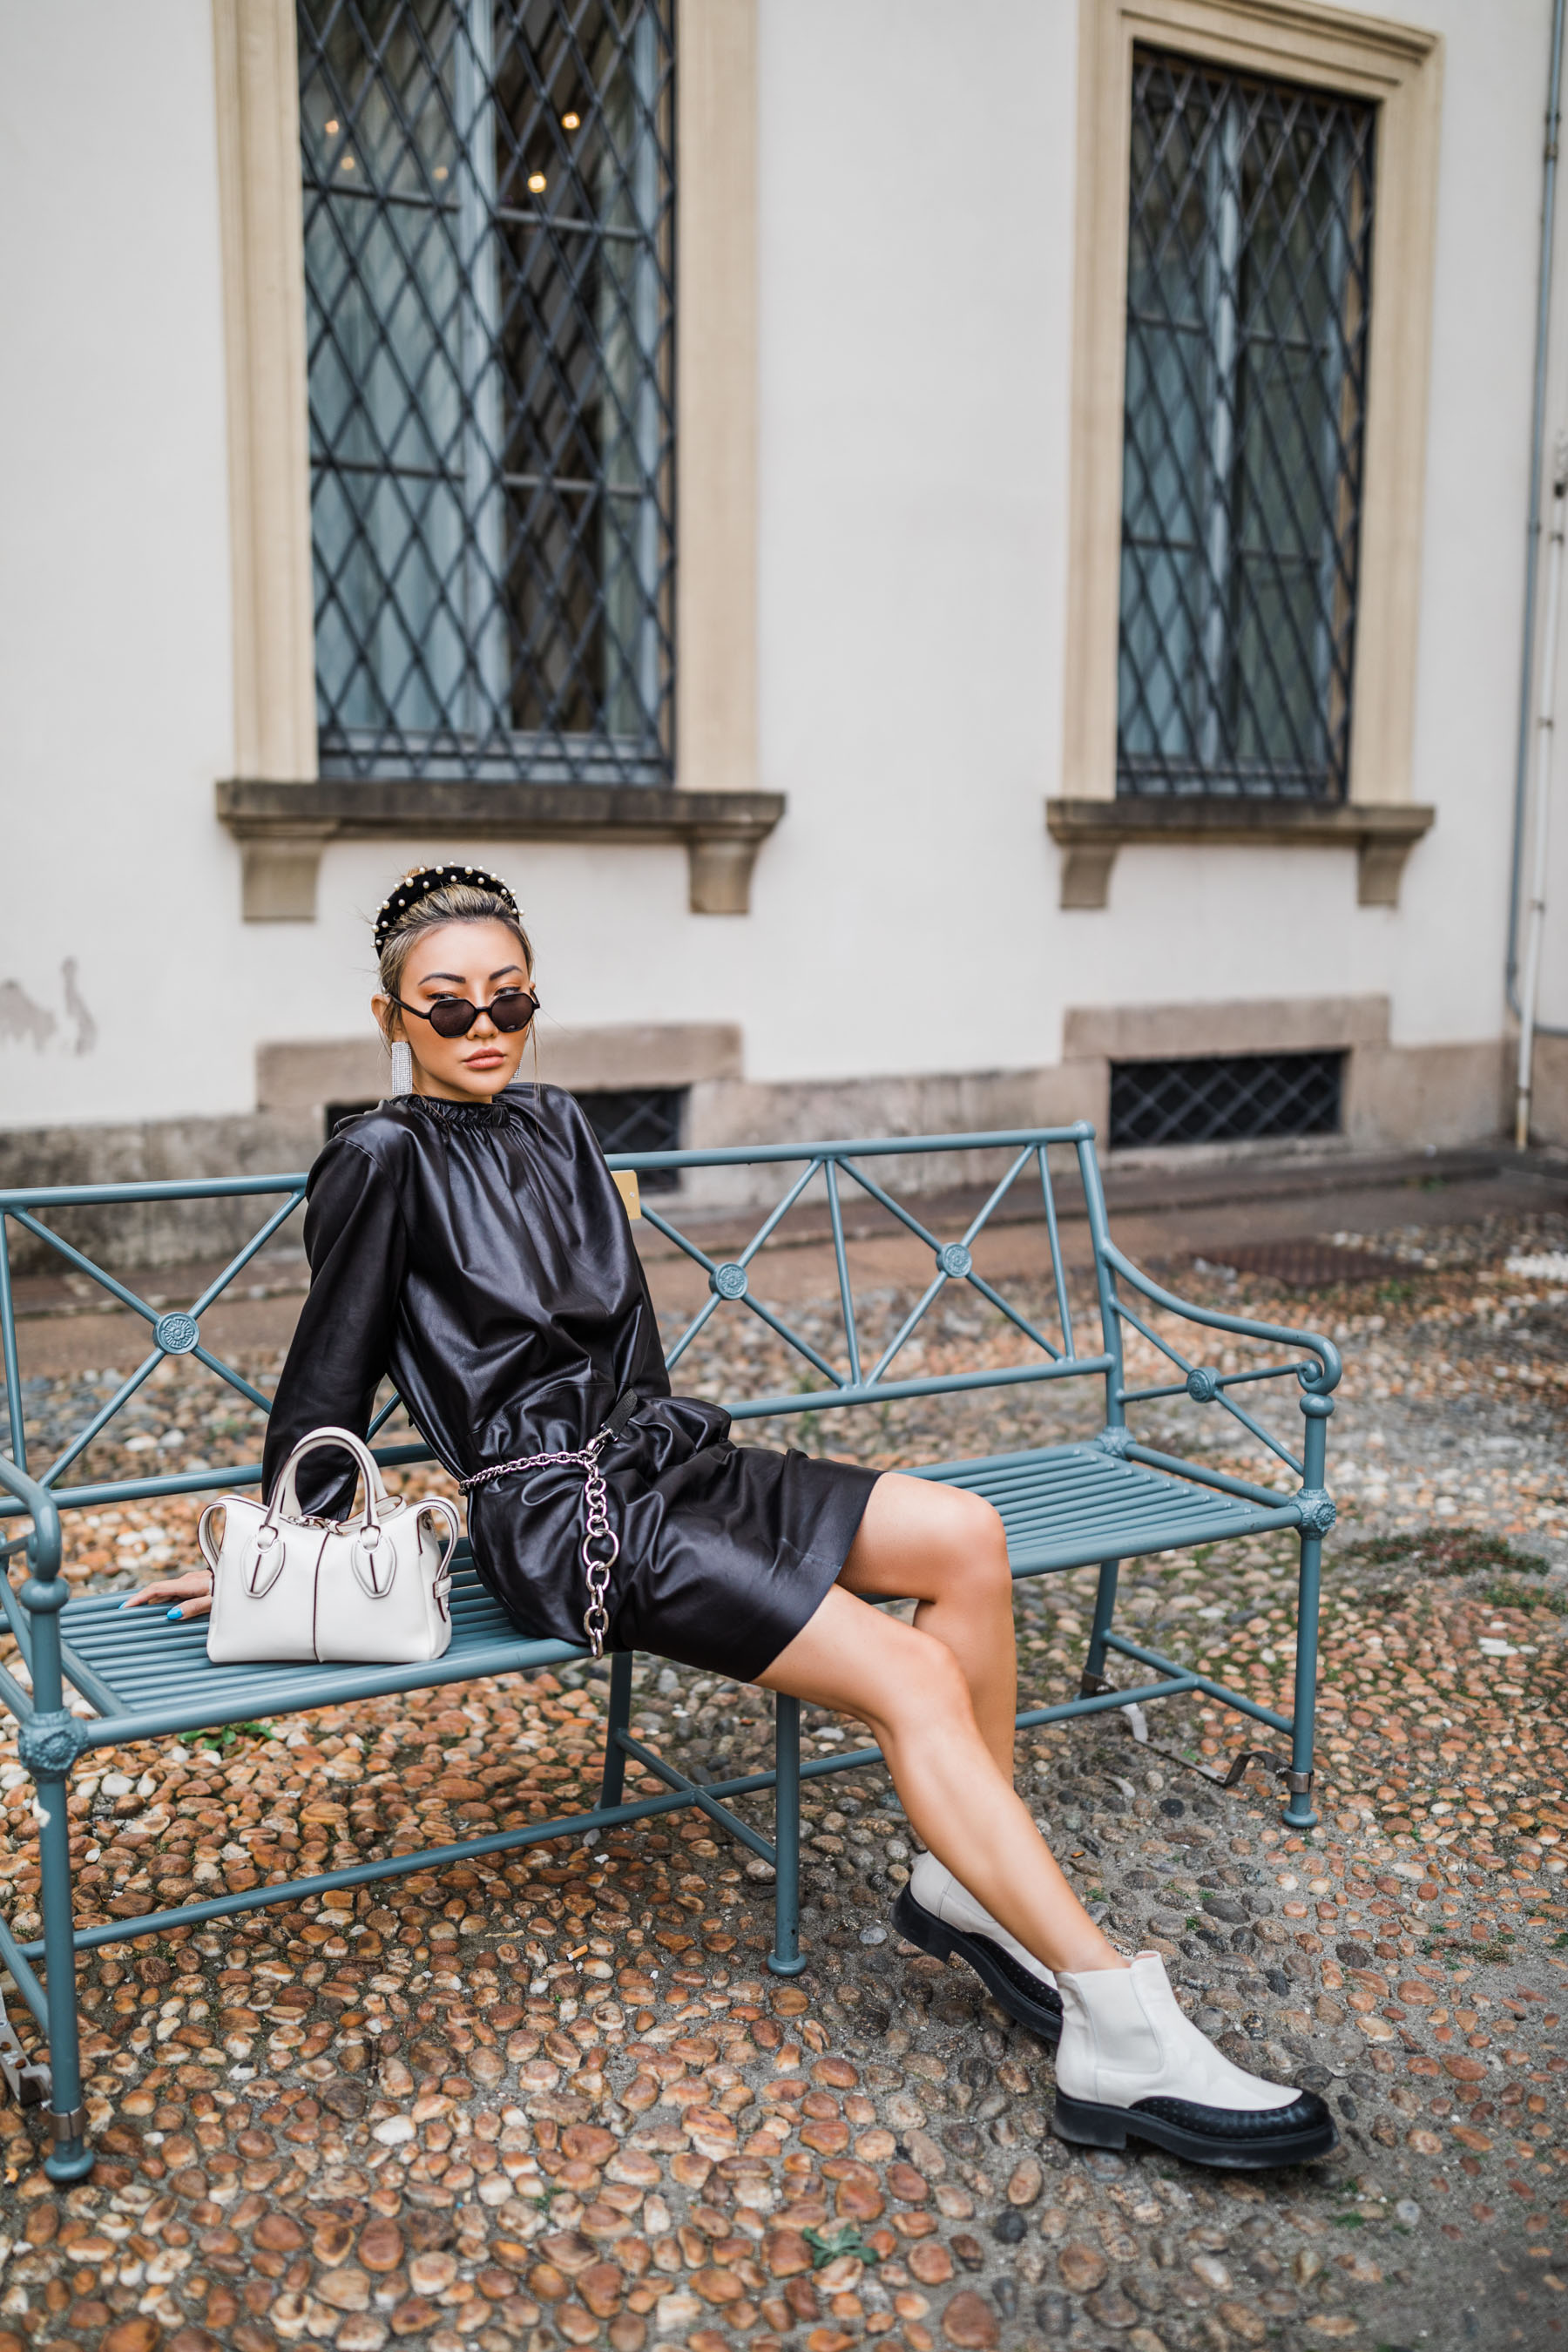 tod's leather mini dress, tod's ankle boots, tod's mini tote, illesteva sunglasses, jennifer behr beaded headband // Notjessfashion.com